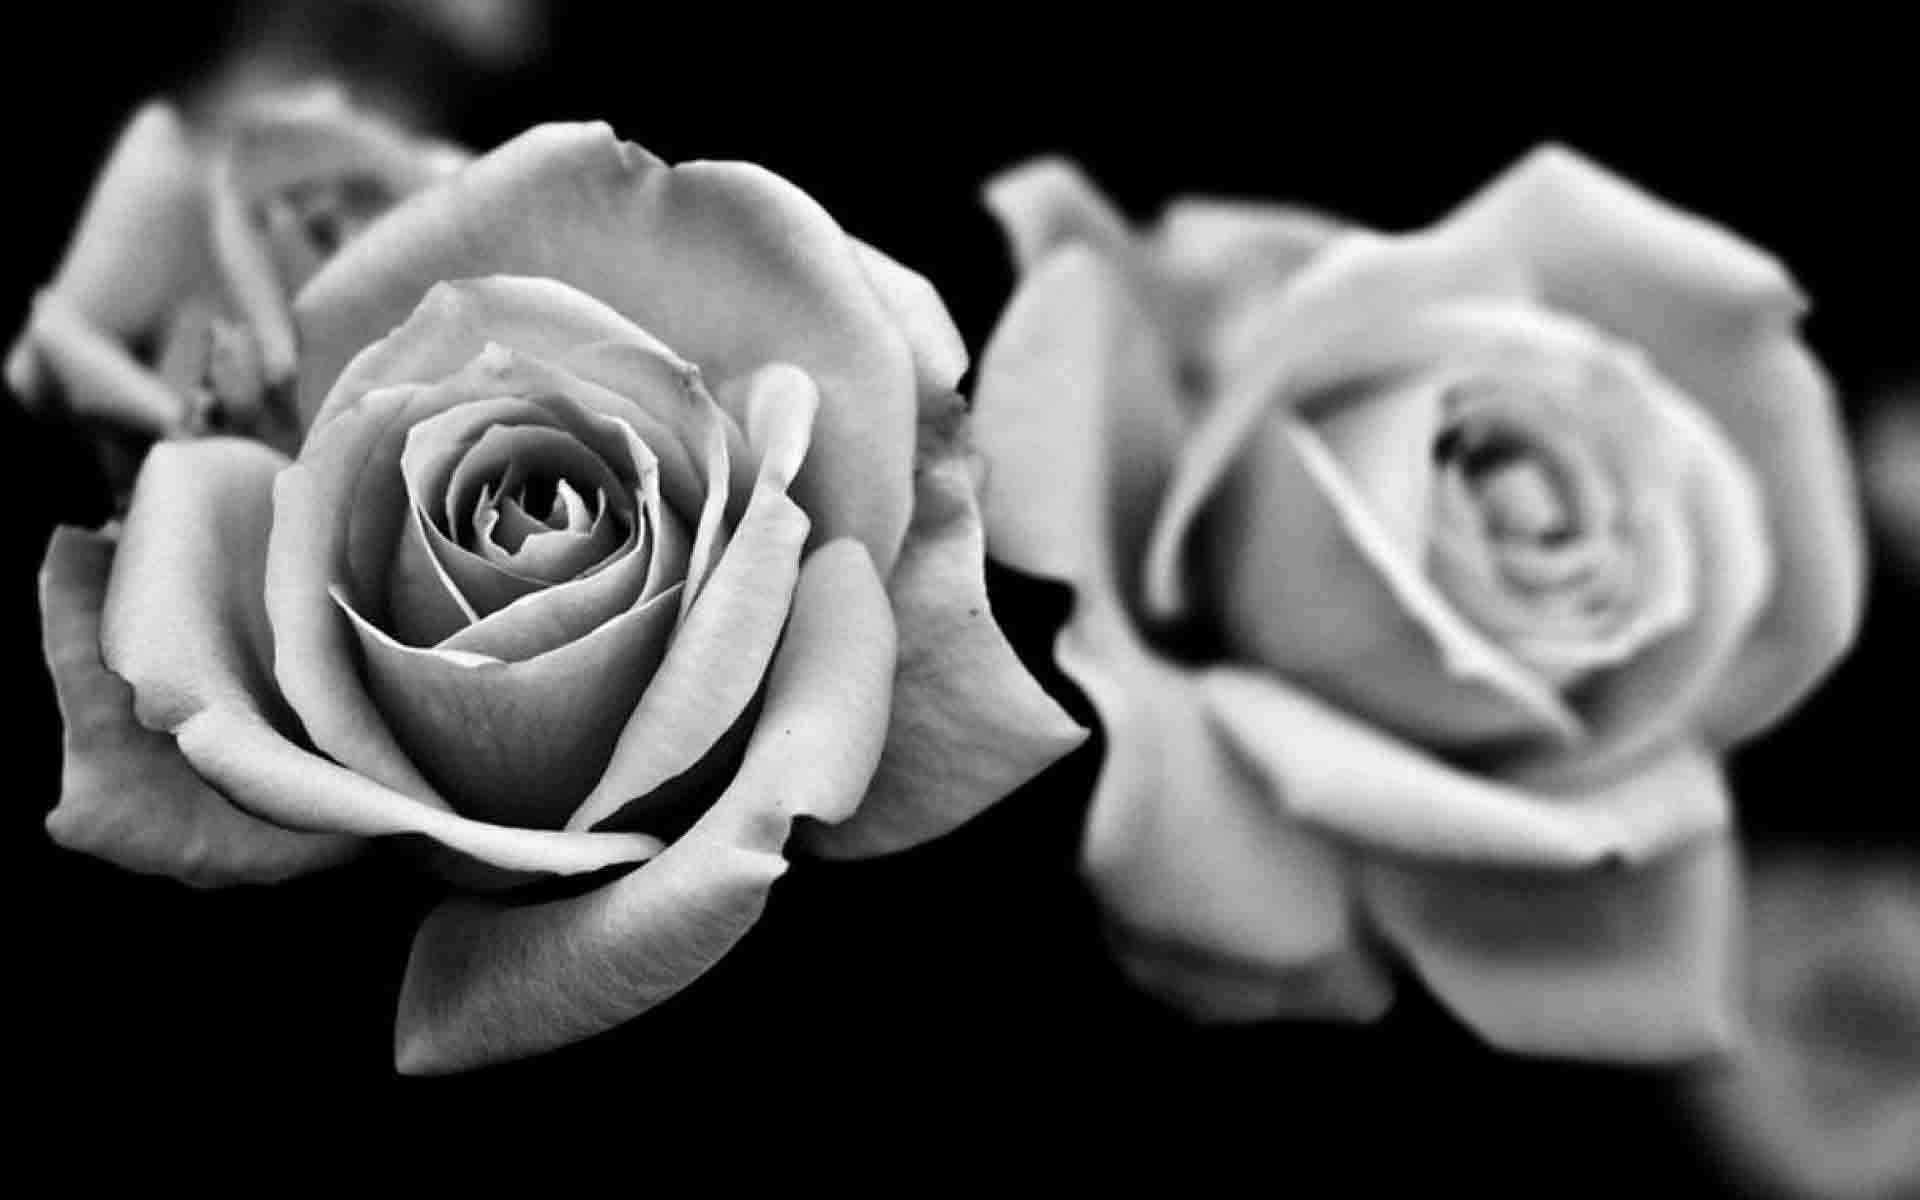 [77+] Black And White Rose Wallpaper On WallpaperSafari